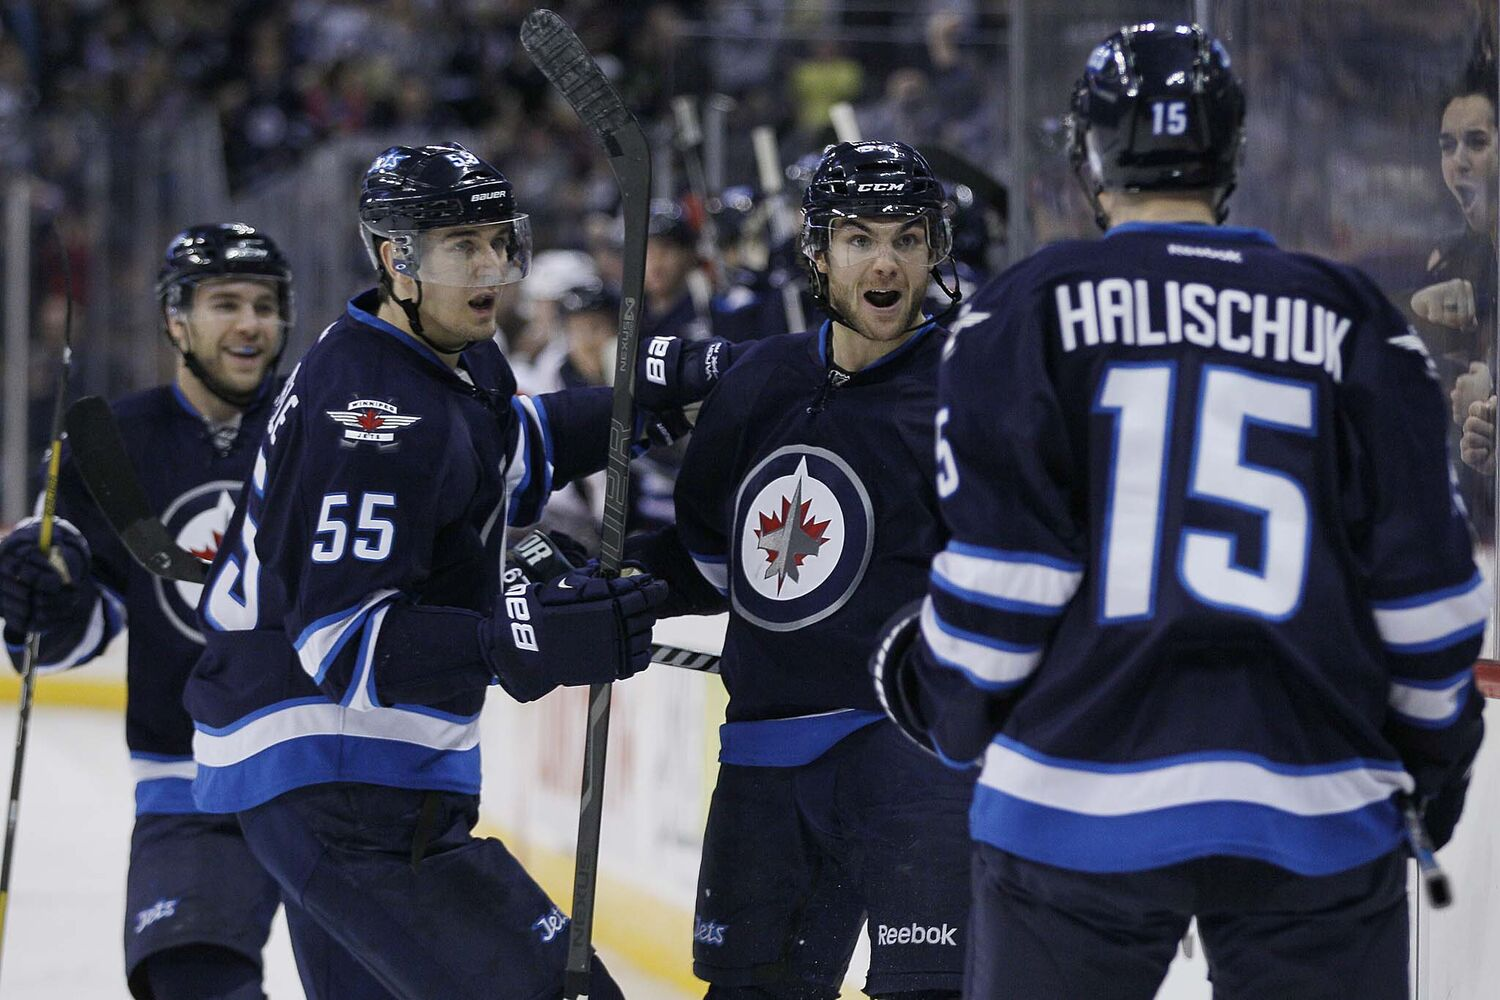 Winnipeg Jets' Michael Frolik (67), Grant Clitsome (24), Mark Scheifele (55) and Matt Halishchuk (15) celebrate Frolik's goal against San Jose Sharks' goaltender Antti Niemi (31) during second period action.